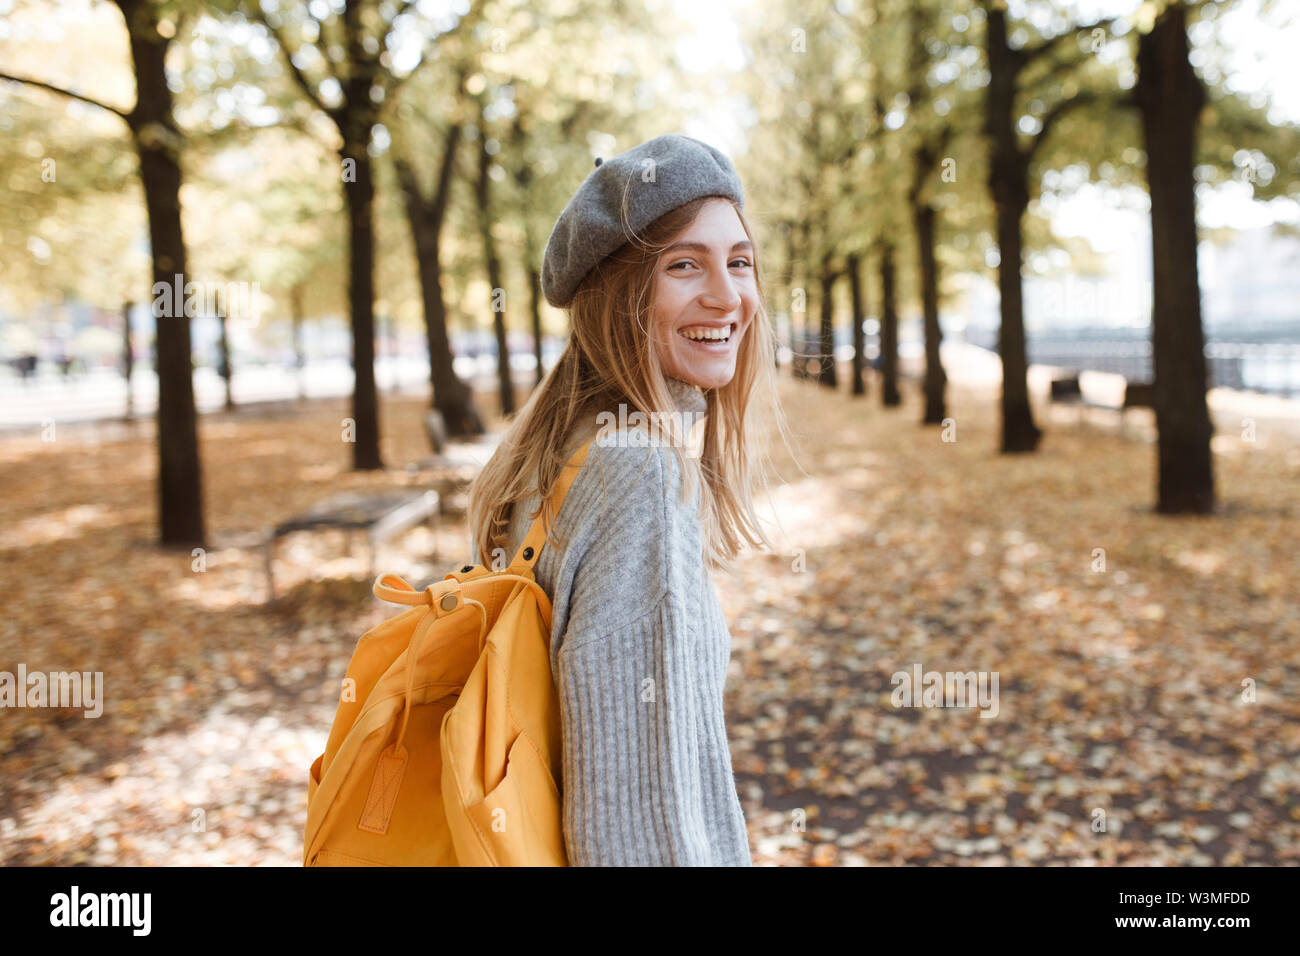 Young woman with yellow backpack in park in Berlin, Germany - Stock Image